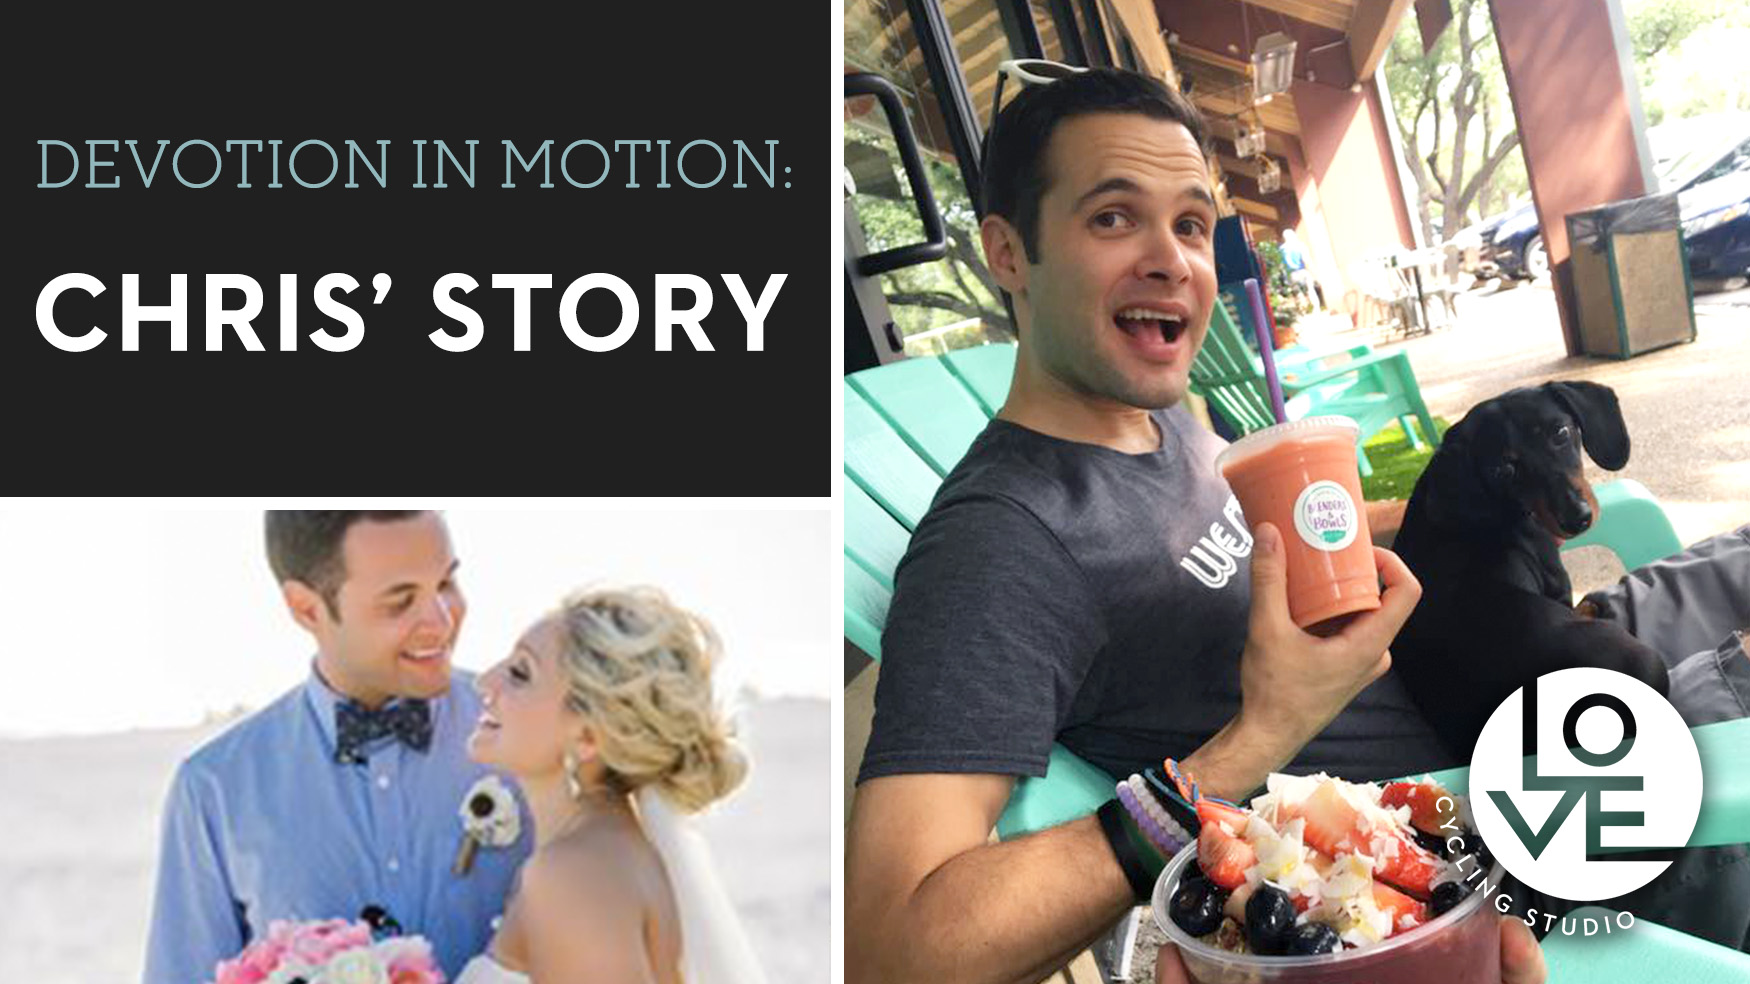 Devotion in Motion - Chris' Story